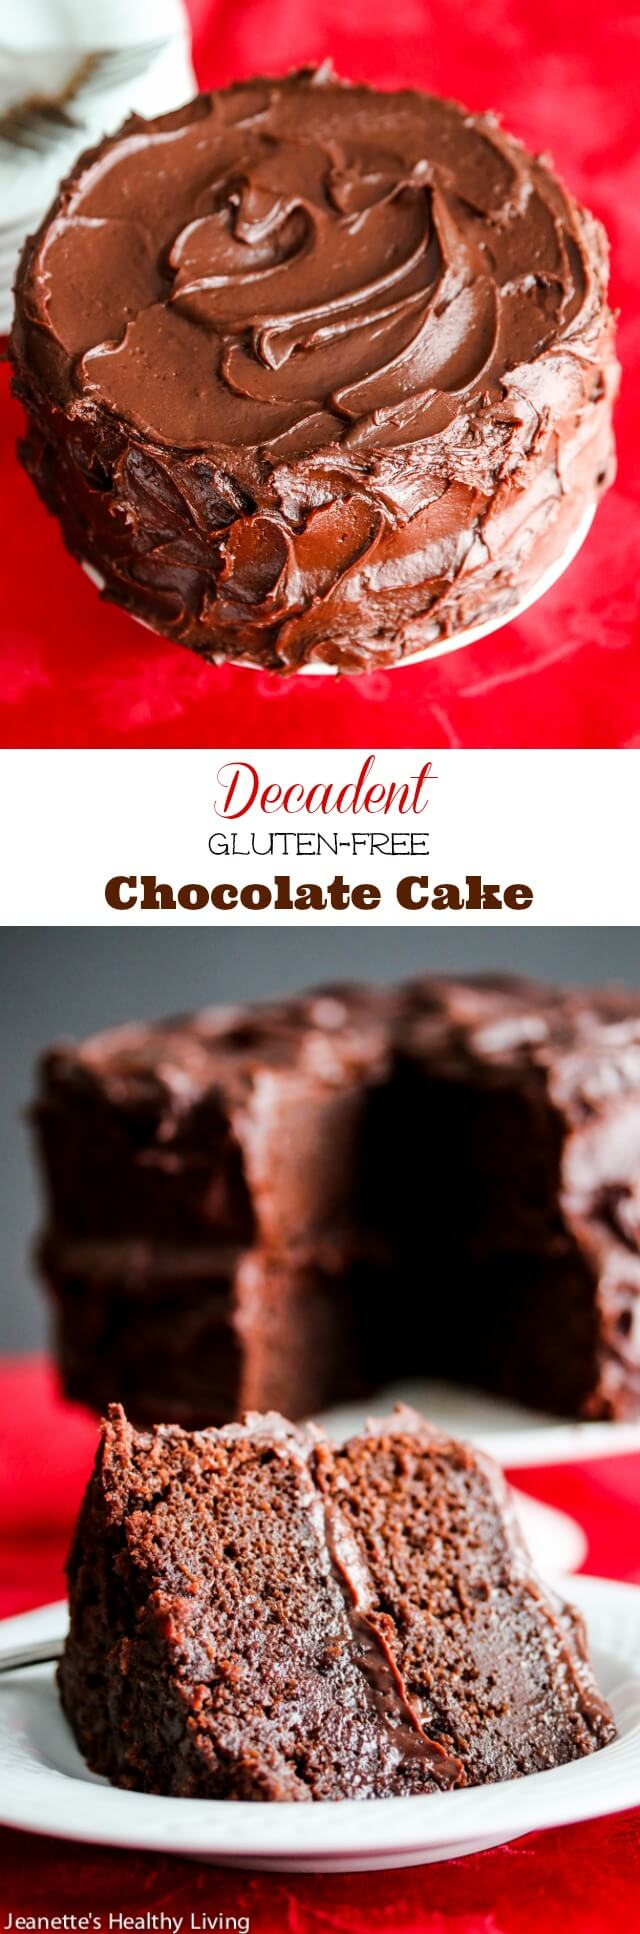 Decadent Gluten-Free Chocolate Cake - so chocolatey and rich, no one will guess it's gluten-free. Perfect for the holiday dessert table.